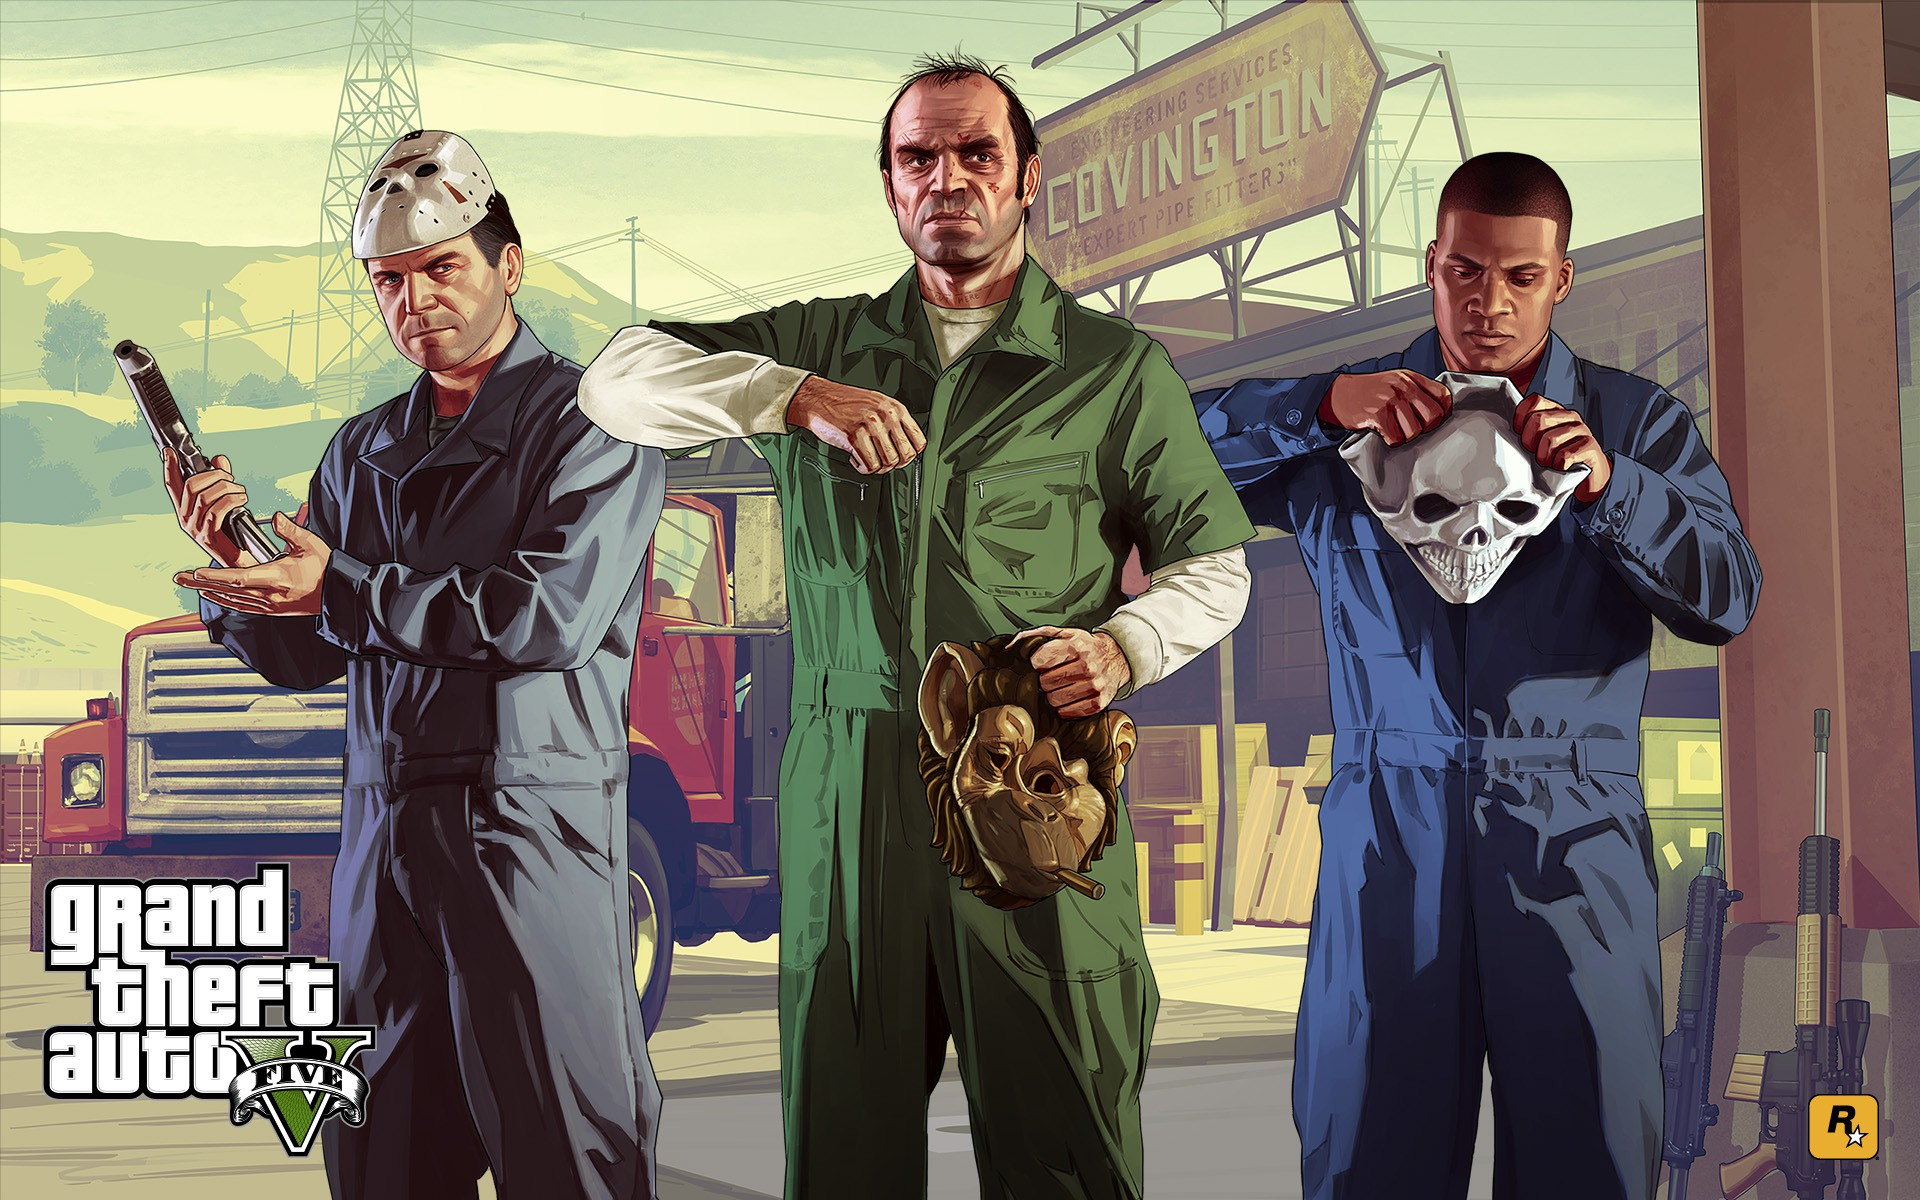 gta5-artwork-56-hd.jpg